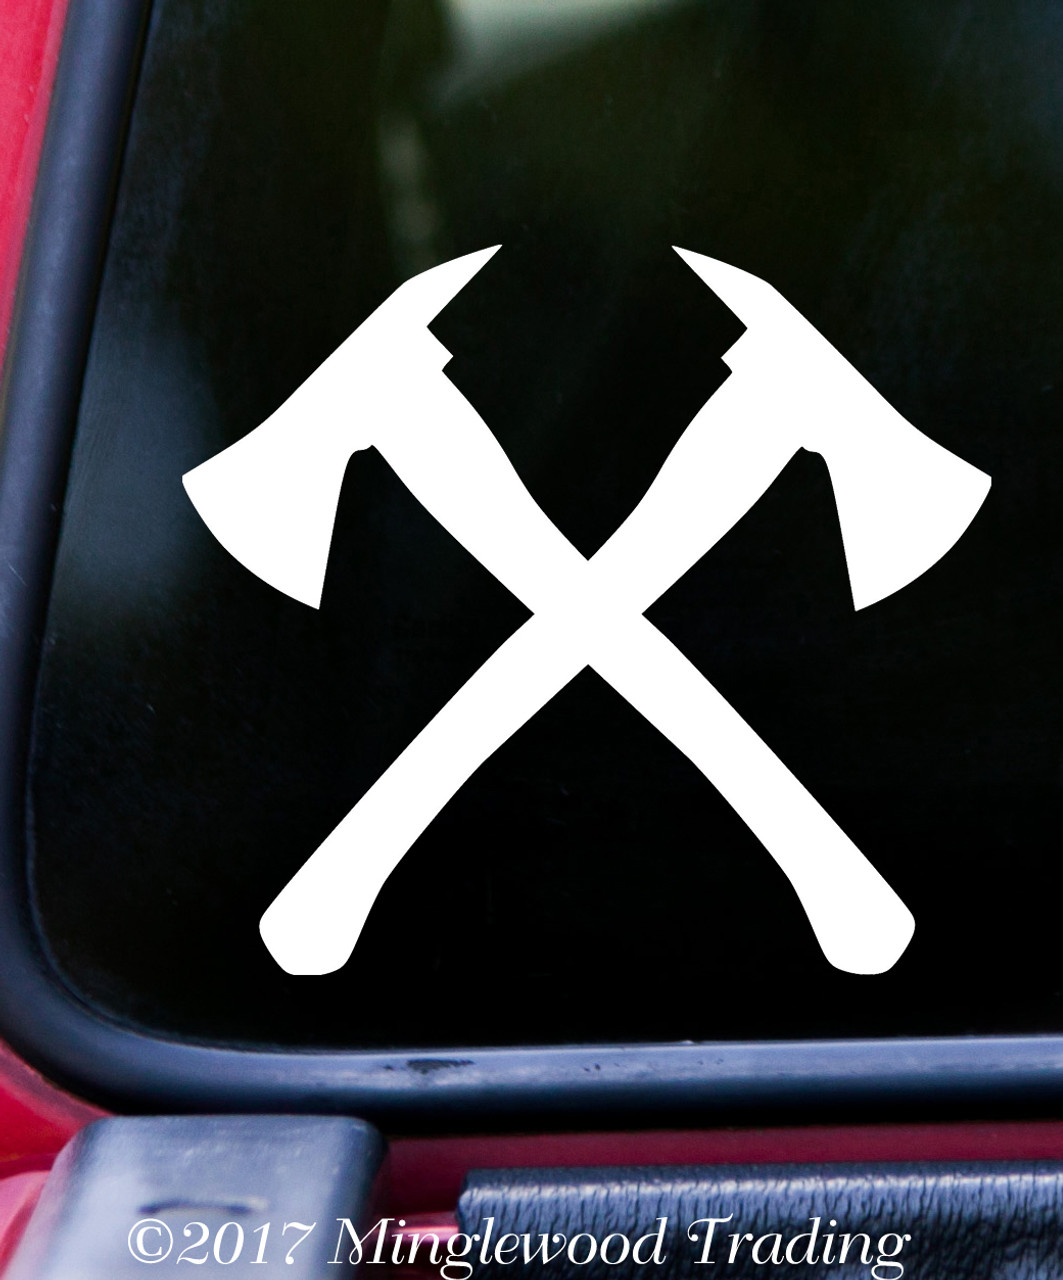 Crossed Firefighter Axes Vinyl Decal - Fireman Fire Dept - Die Cut Sticker